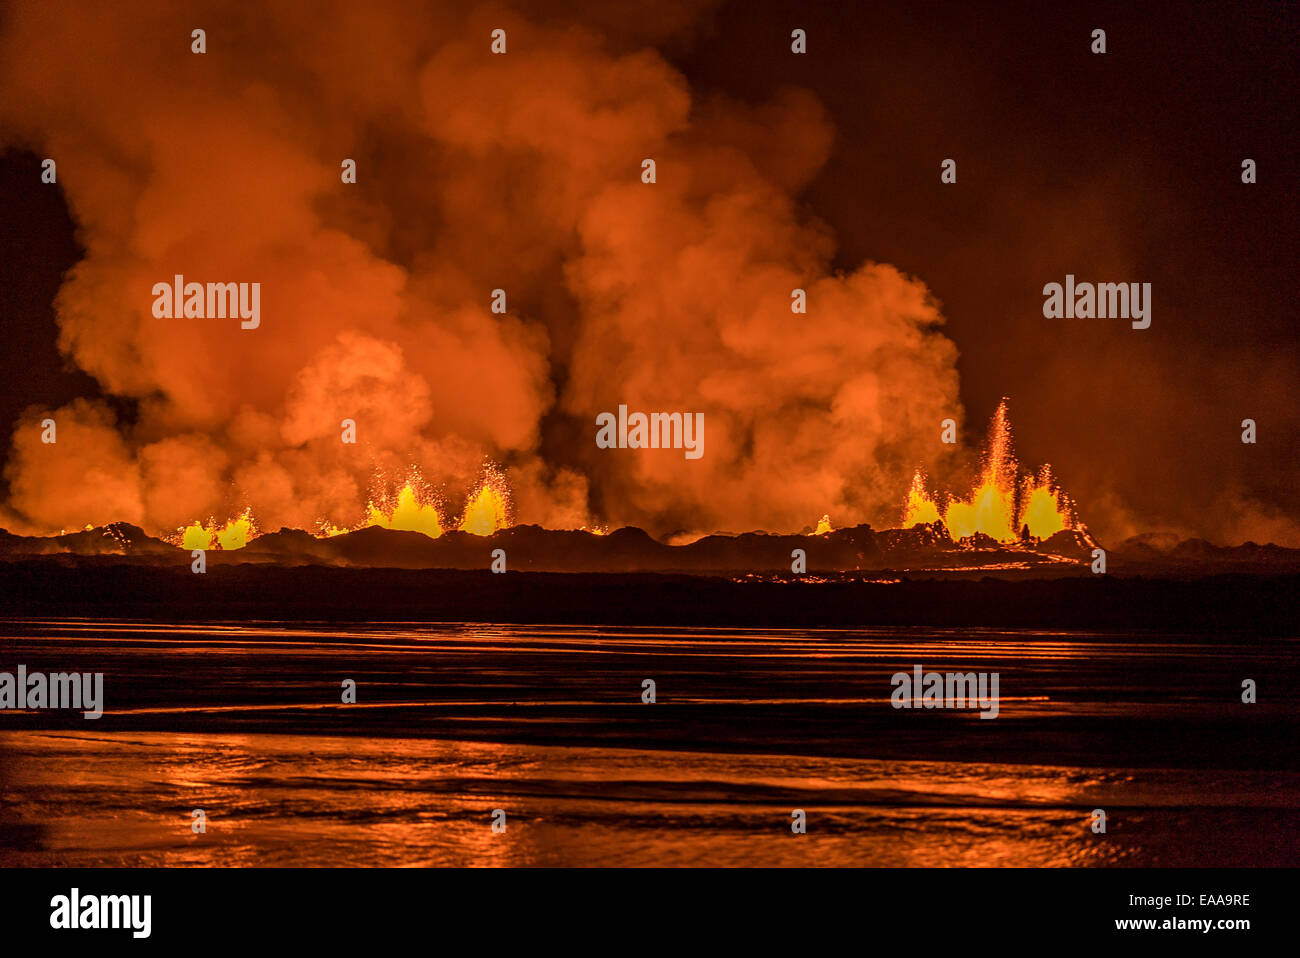 Lava and plumes, Holuhraun Fissure Eruption, Bardarbunga Volcano, Iceland - Stock Image